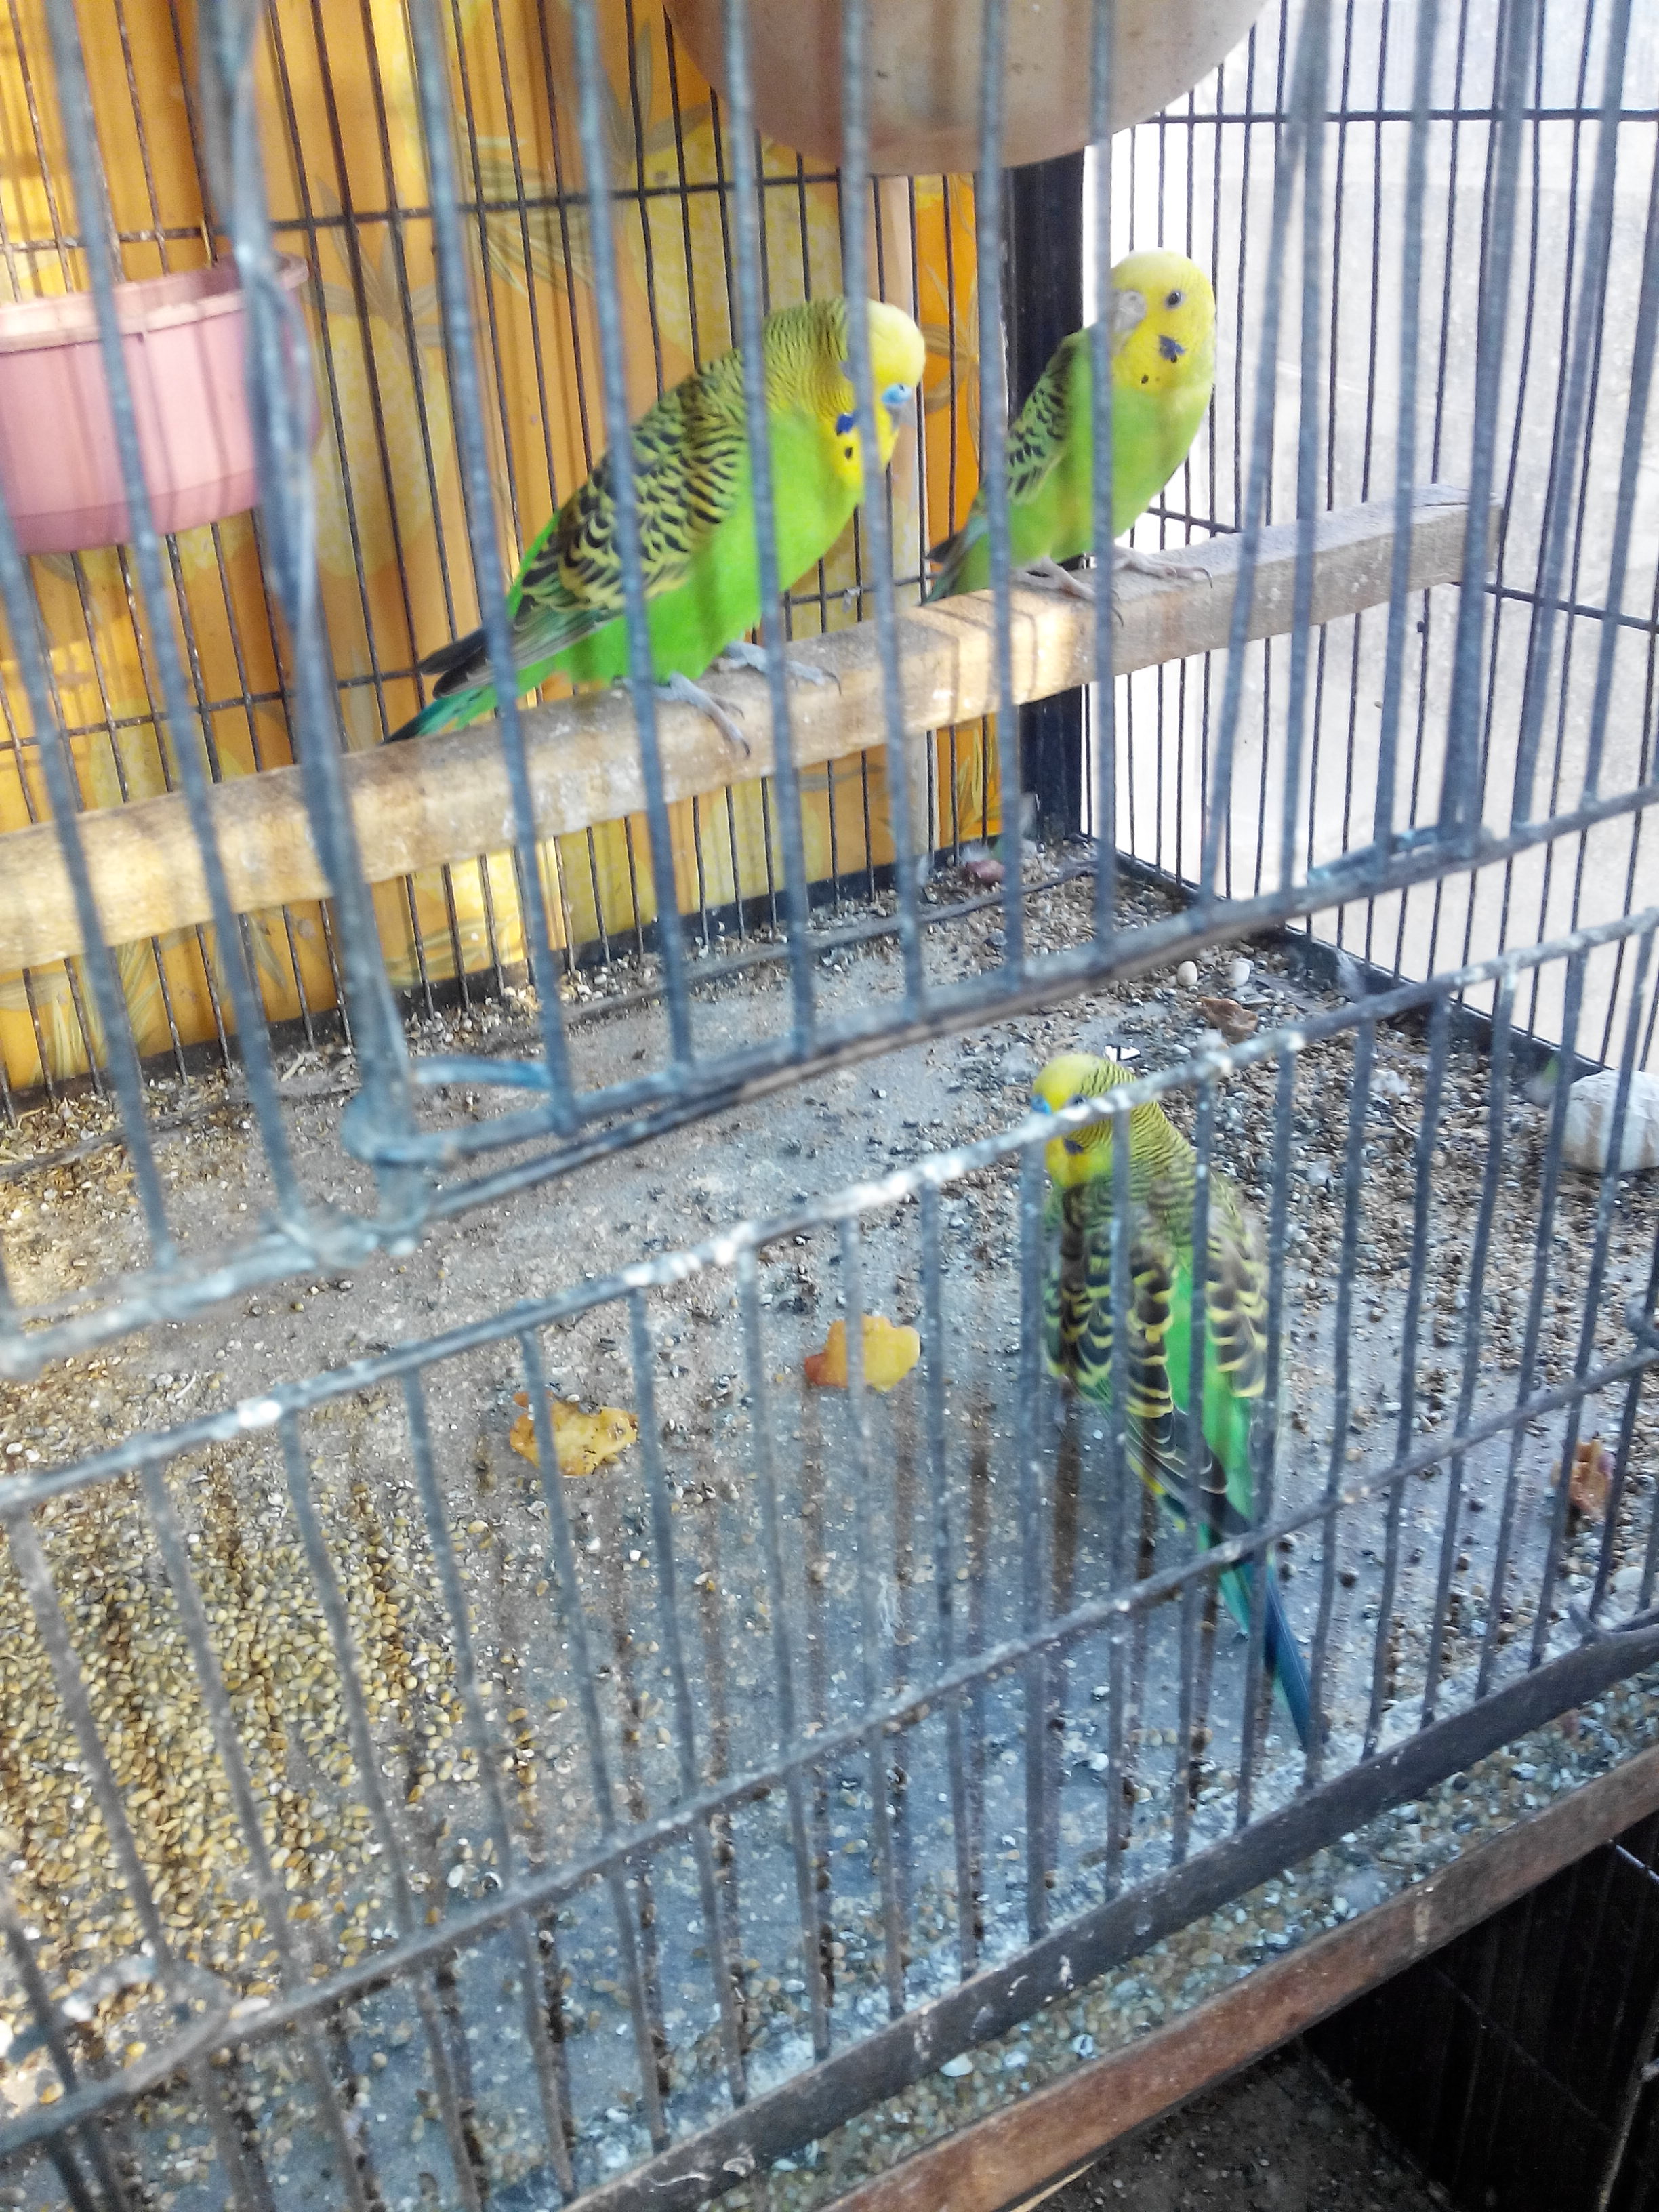 Pets Pakistan - 3 Australian budgies for sale